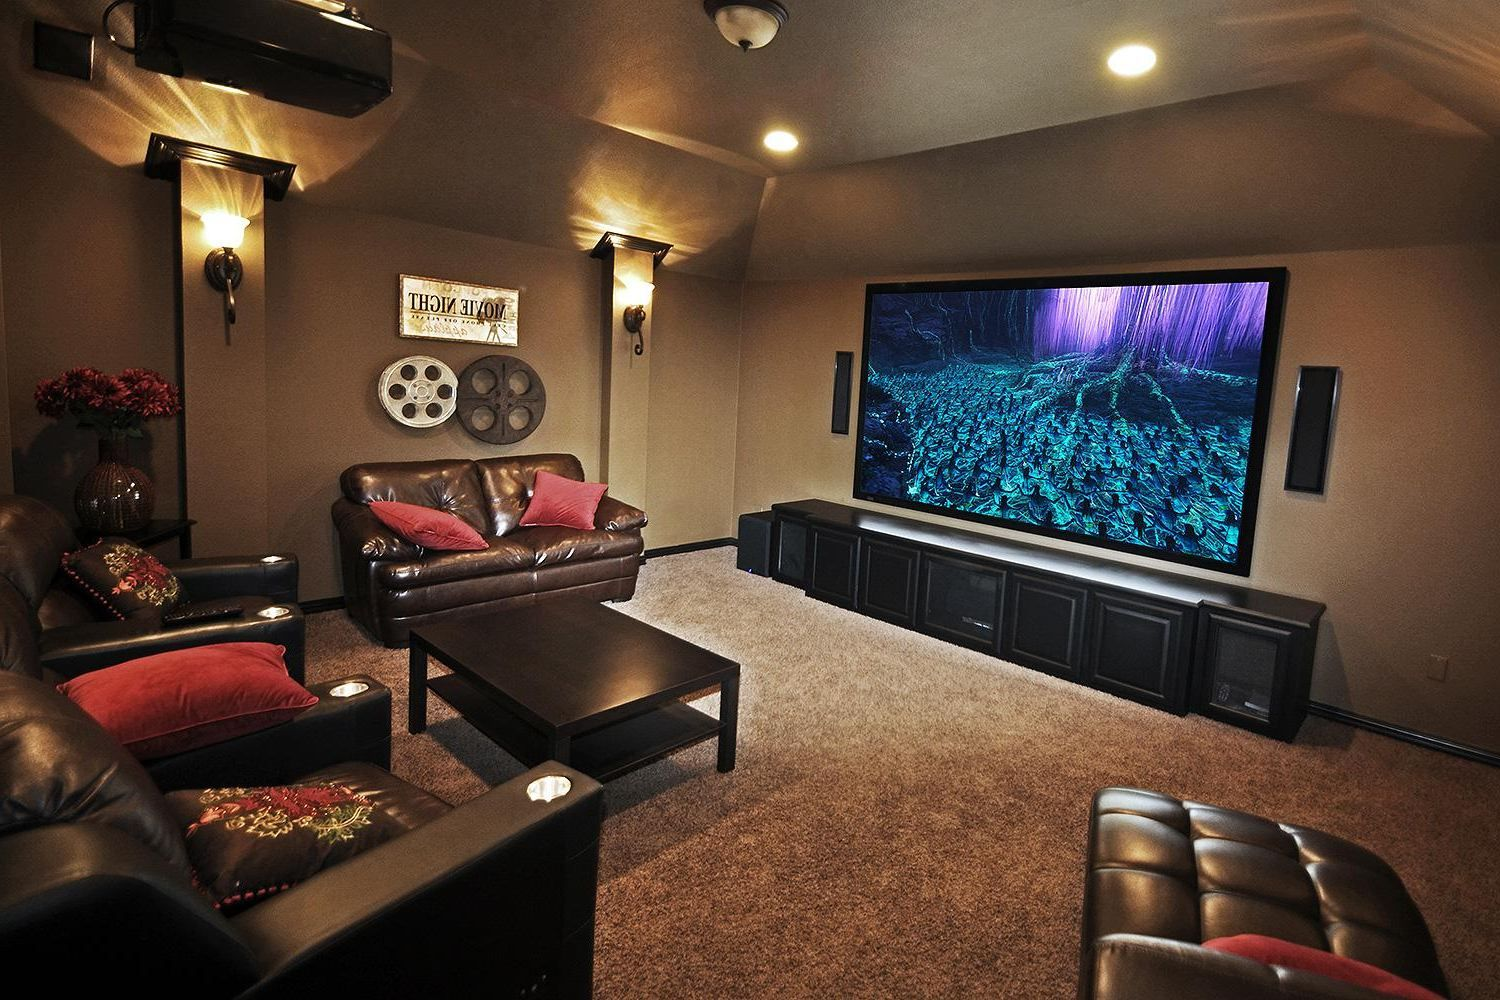 Basement Home Theatre Ideas Property home bar room designs | room ideas, interiors and room